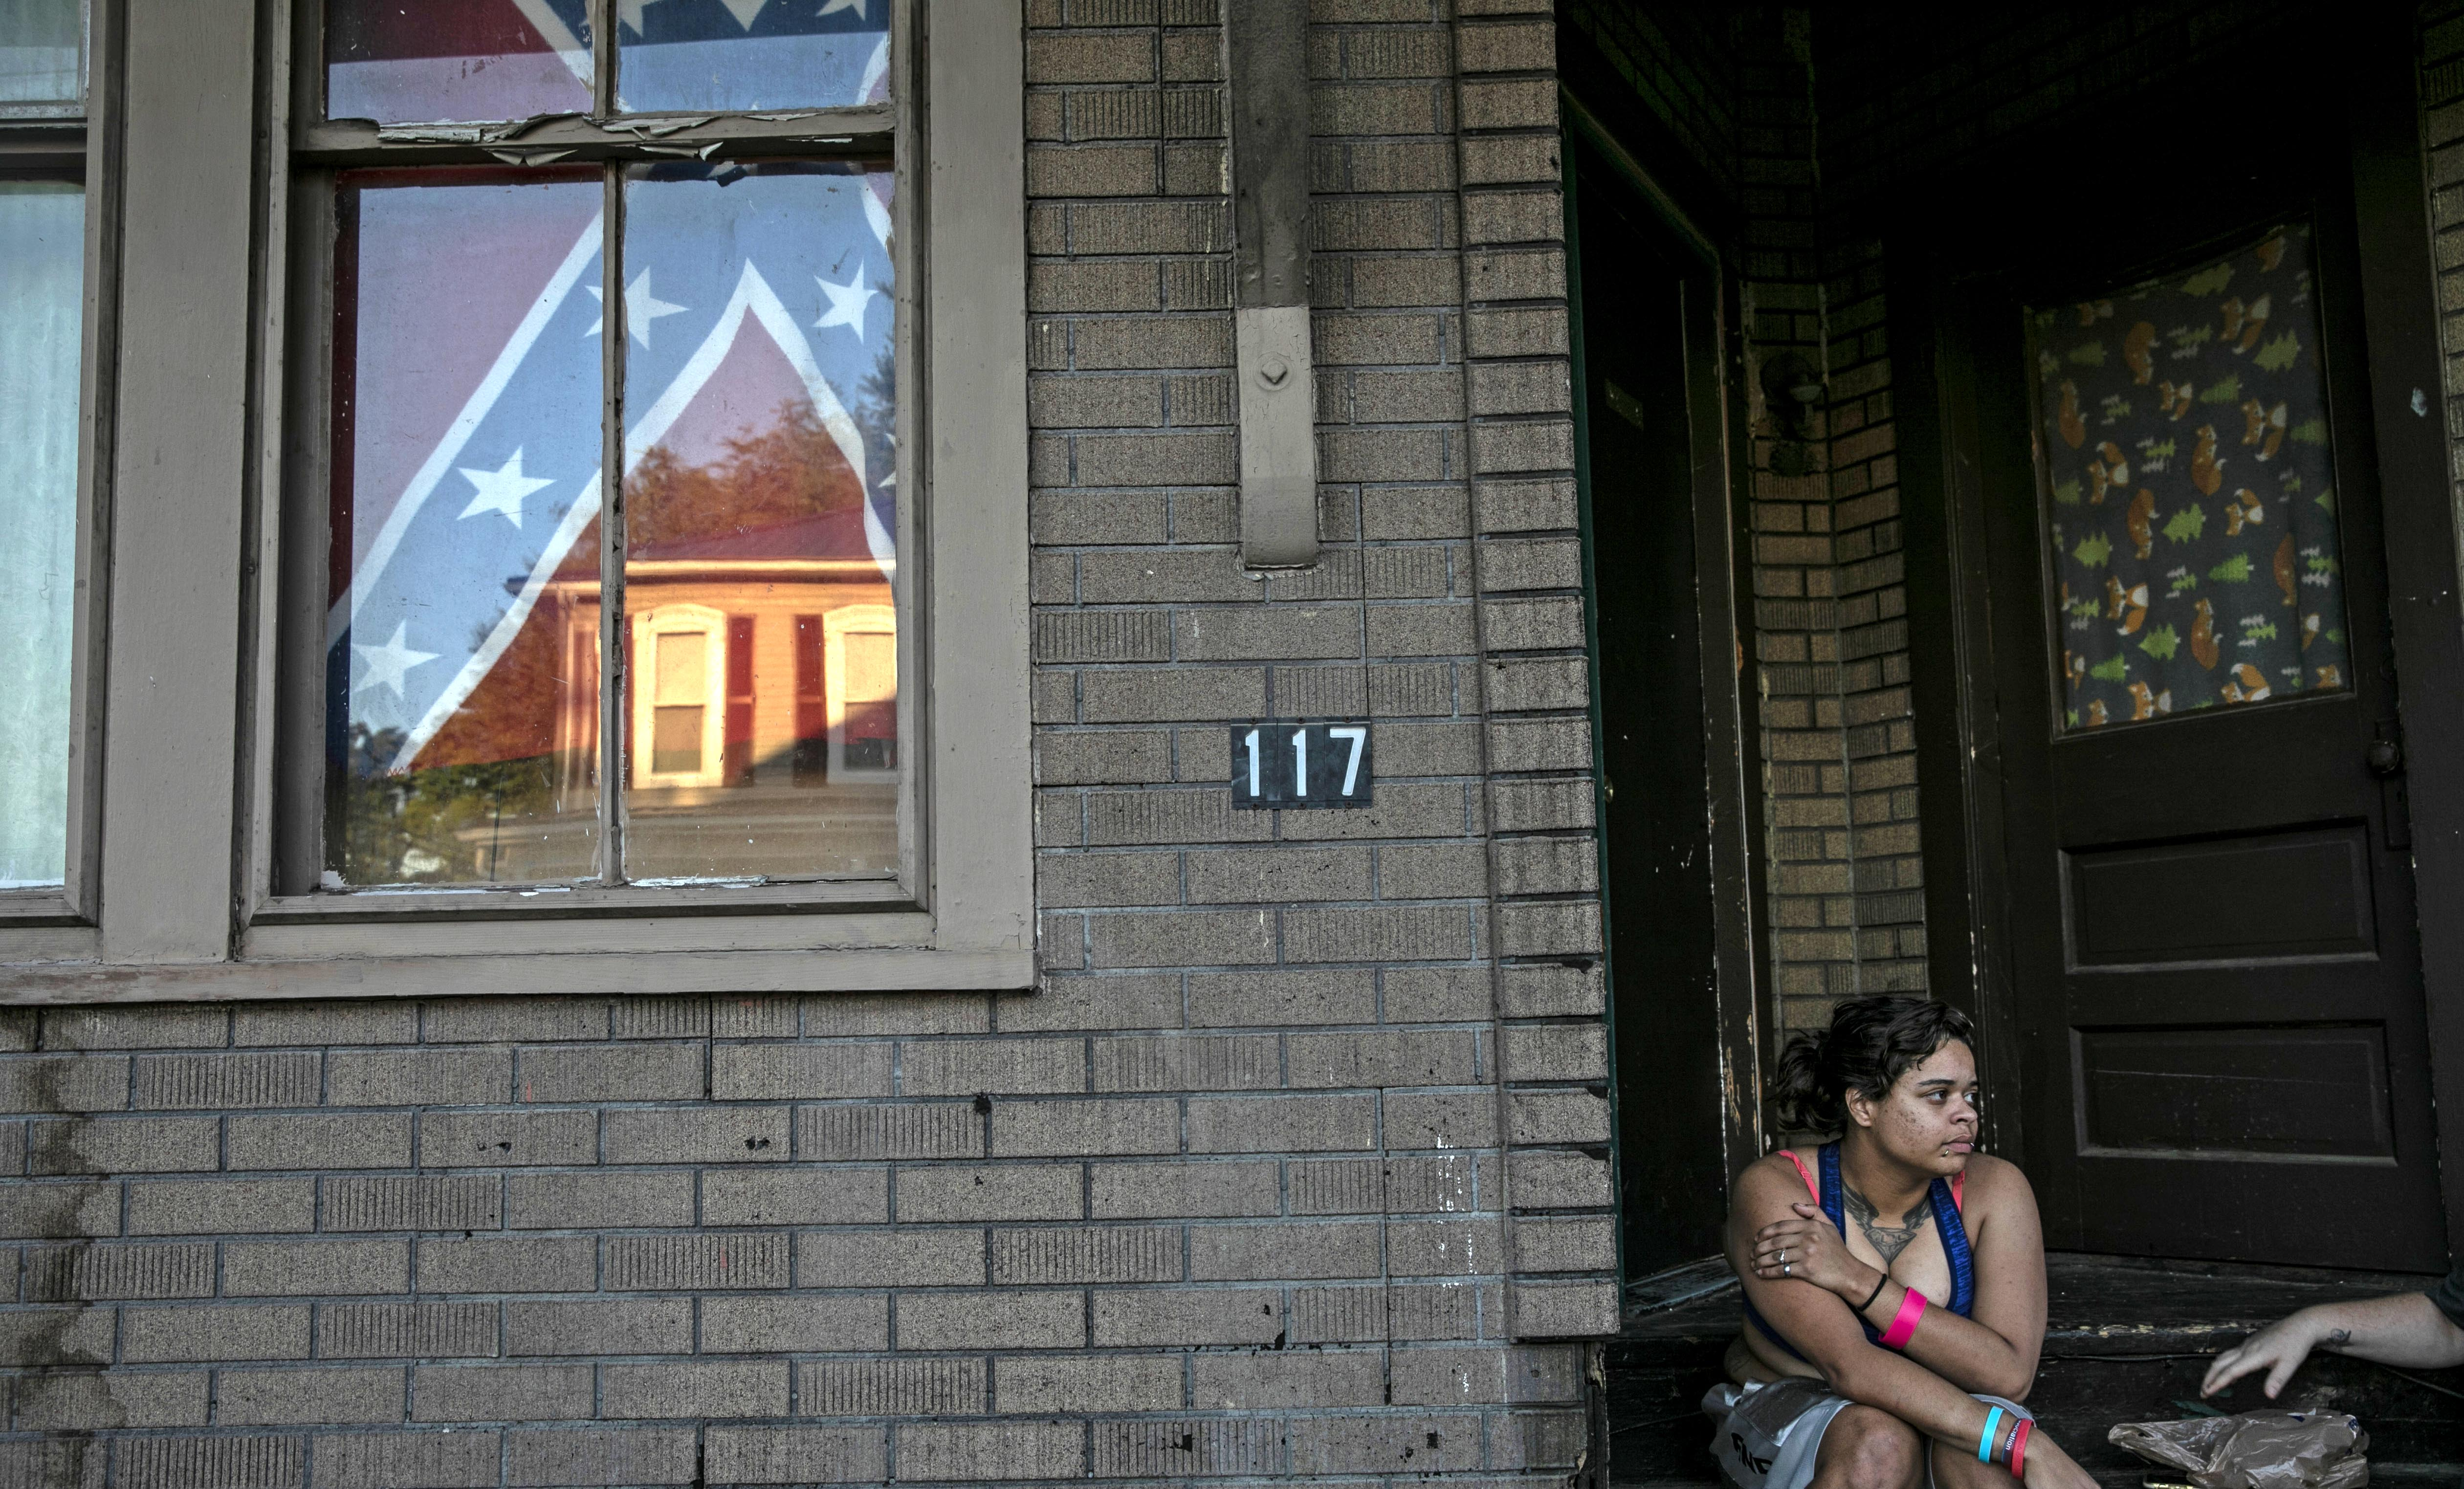 A confederate flag hangs in the window of a home own by a young Black woman in Shawnee Ohio last summer. Photo: Wong Maye-E/AP